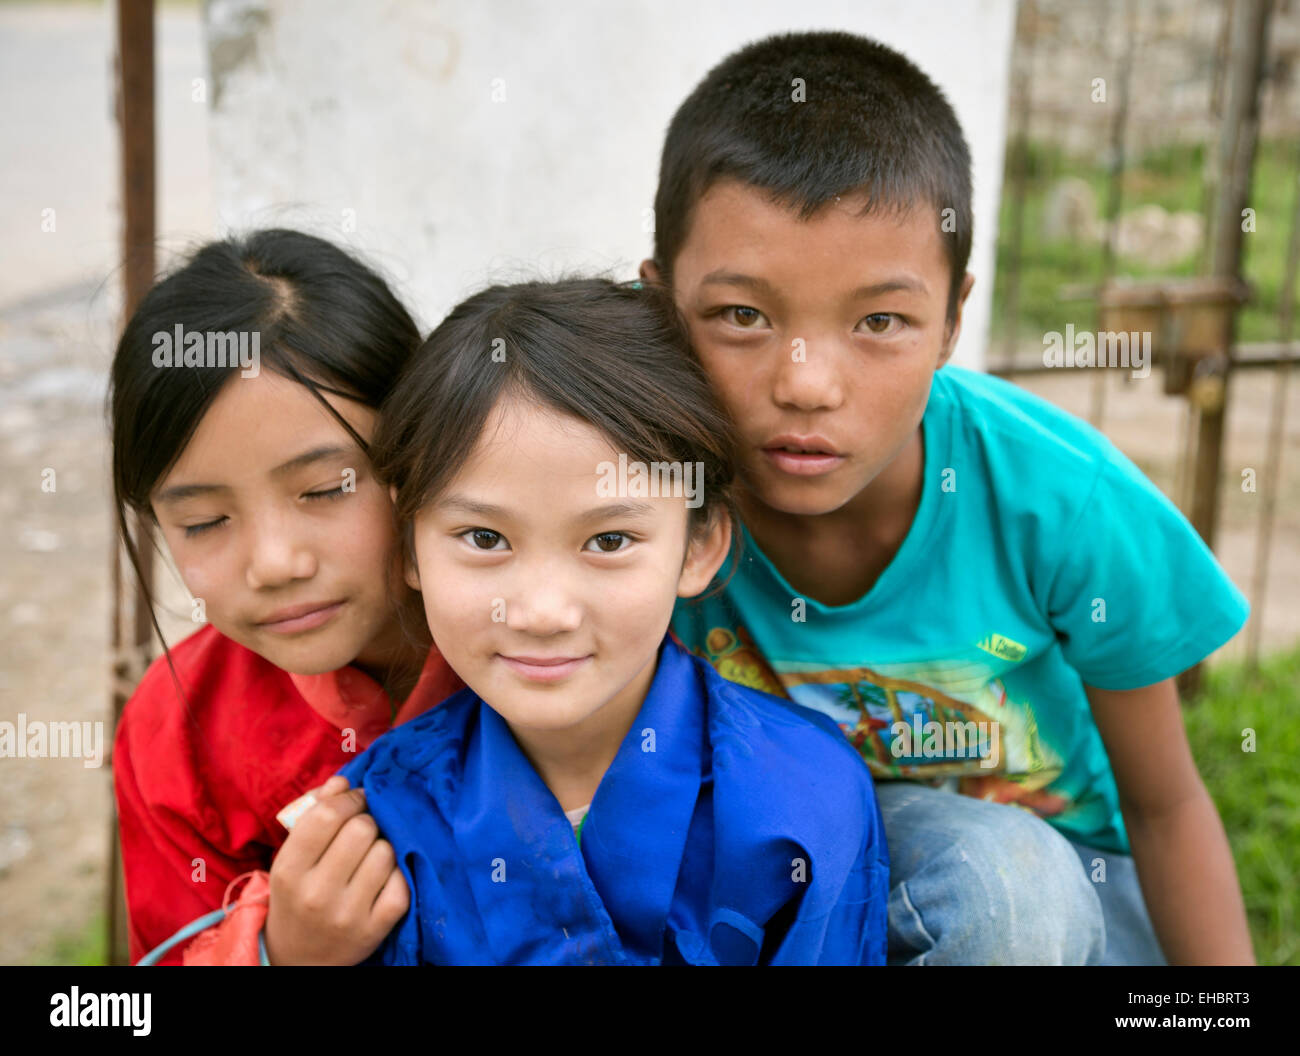 BU00306-00...BHUTAN - Young children enjoying a day off from school during a religious holiday in Paro. - Stock Image